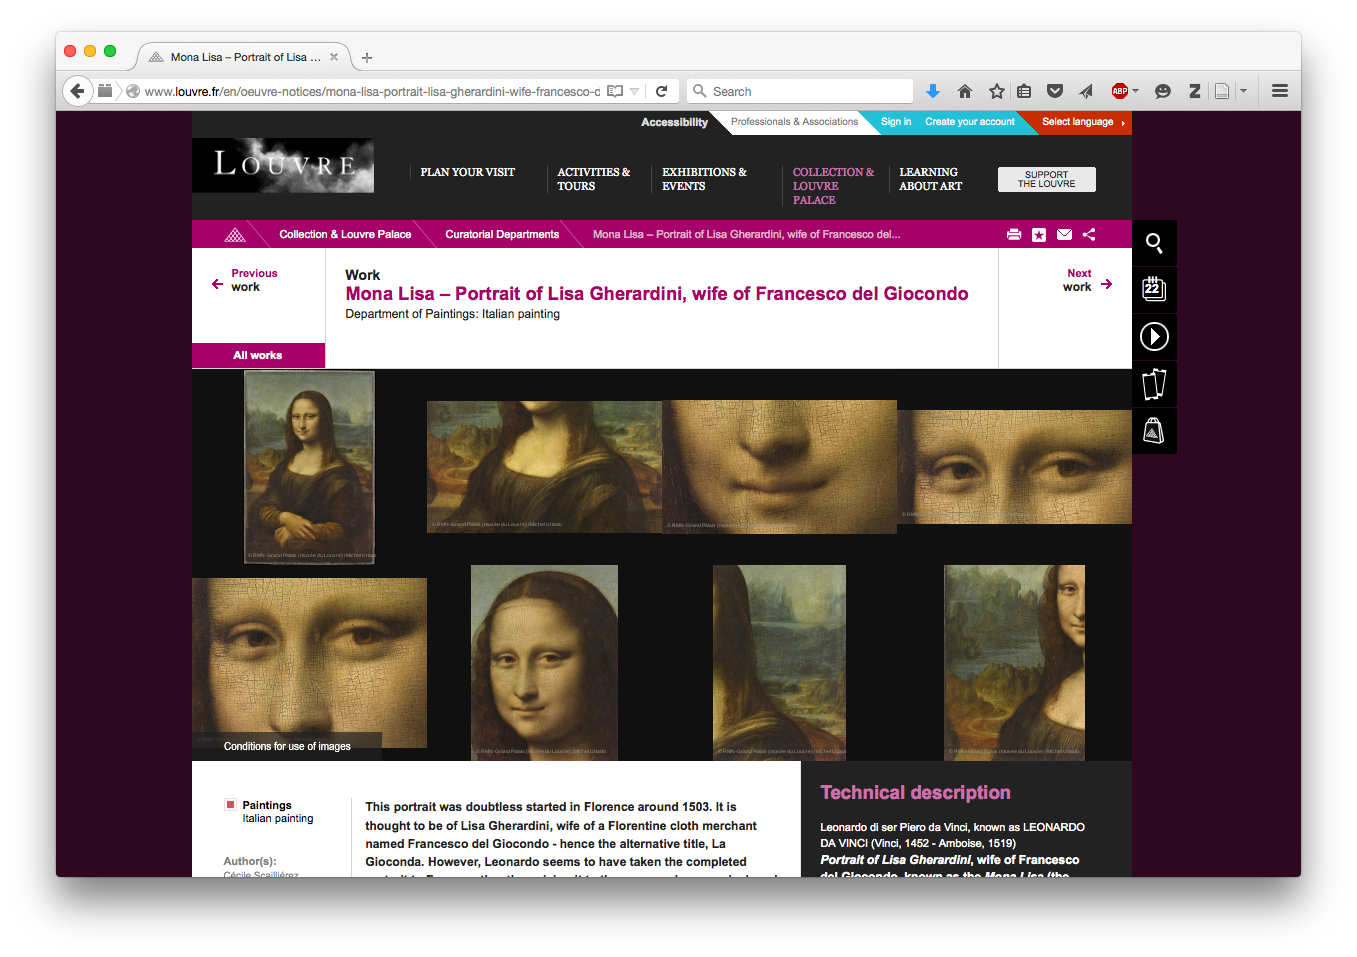 http://www.louvre.fr/en/oeuvre-notices/mona-lisa-portrait-lisa-gherardini-wife-francesco-del-giocondo